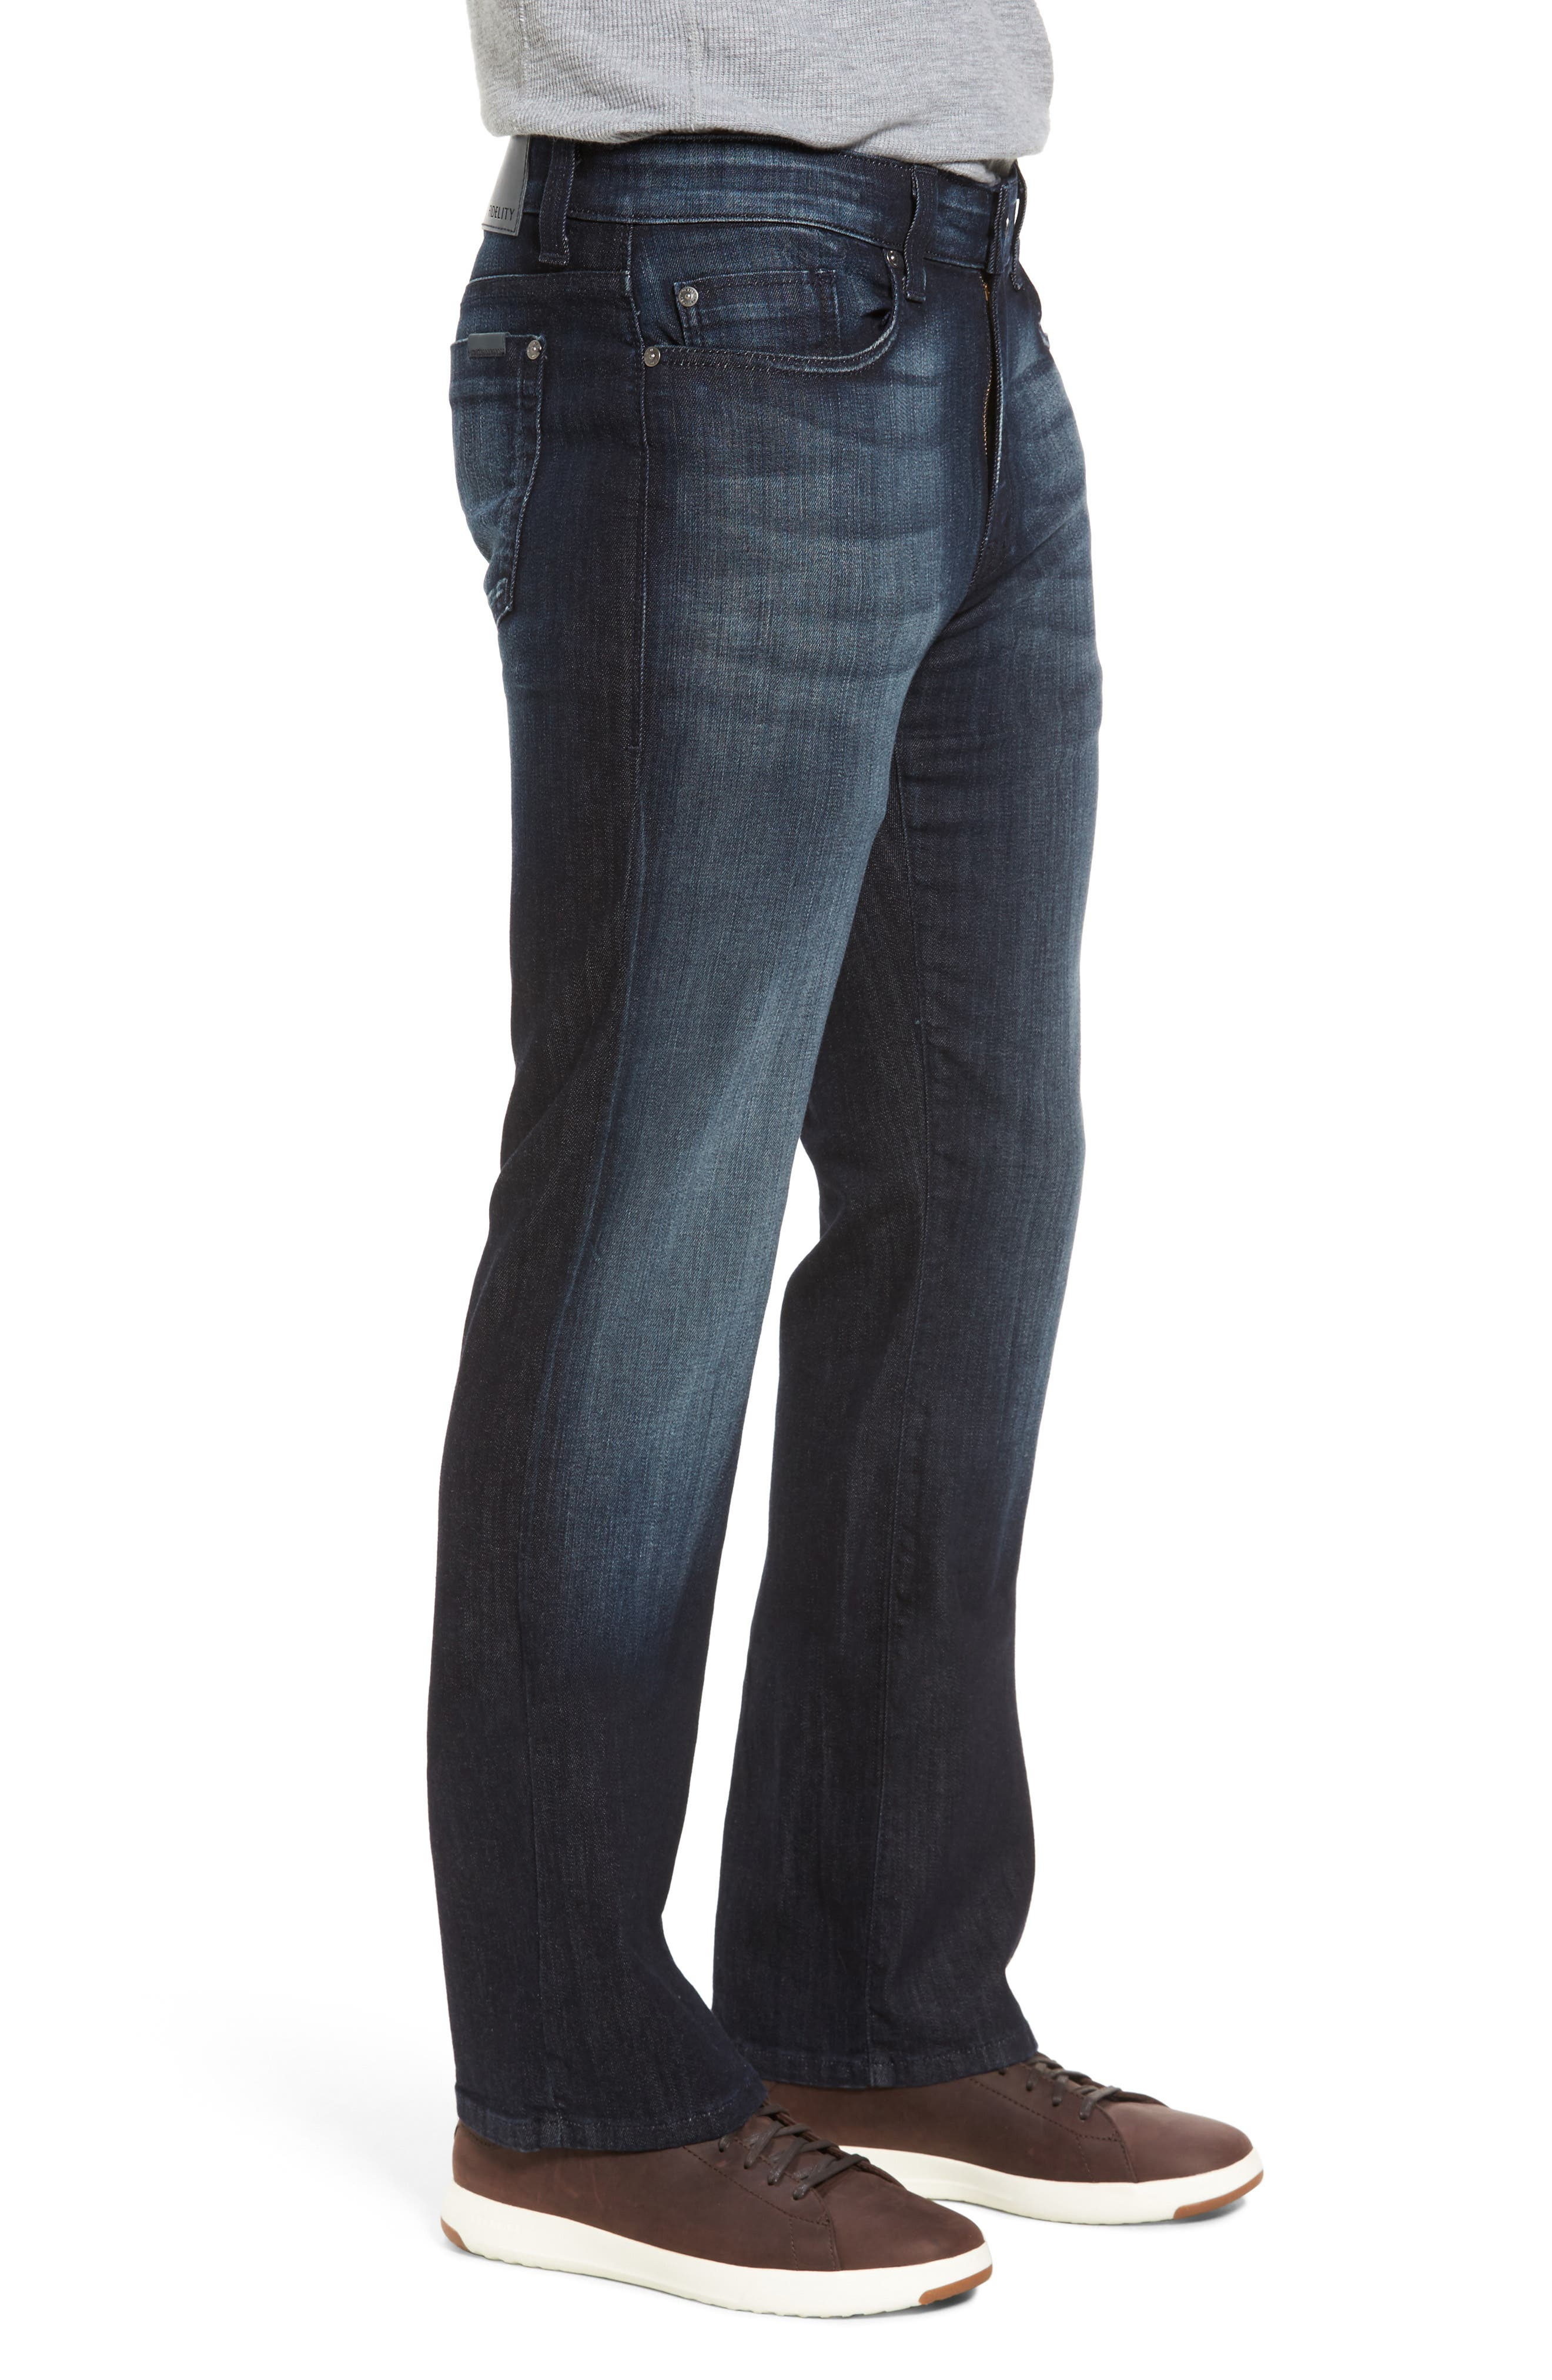 Alternate Image 3  - Fidelity Denim 5011 Relaxed Fit Jeans (Brooklyn Blue)